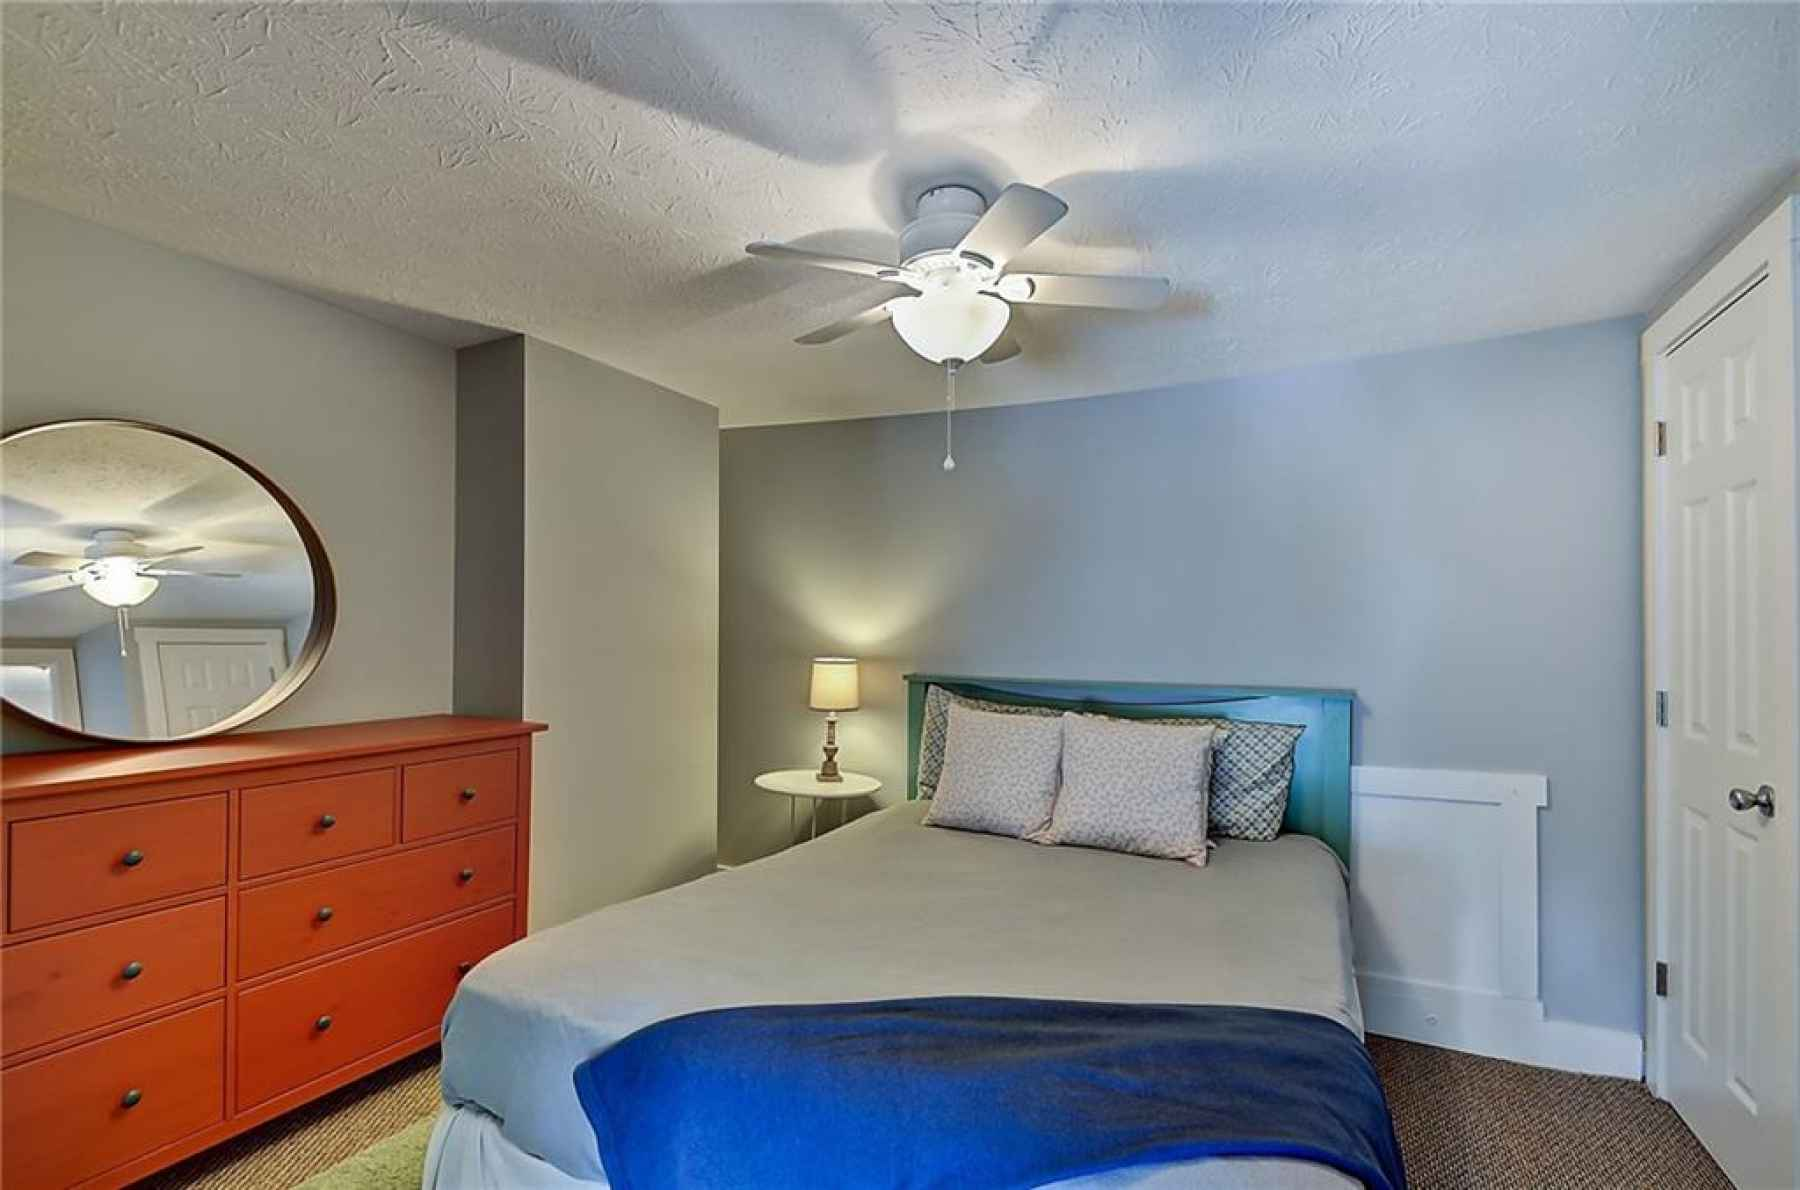 Third floor. Fourth bedroom. Located in the southeast corner of home. Closet door in the right of th